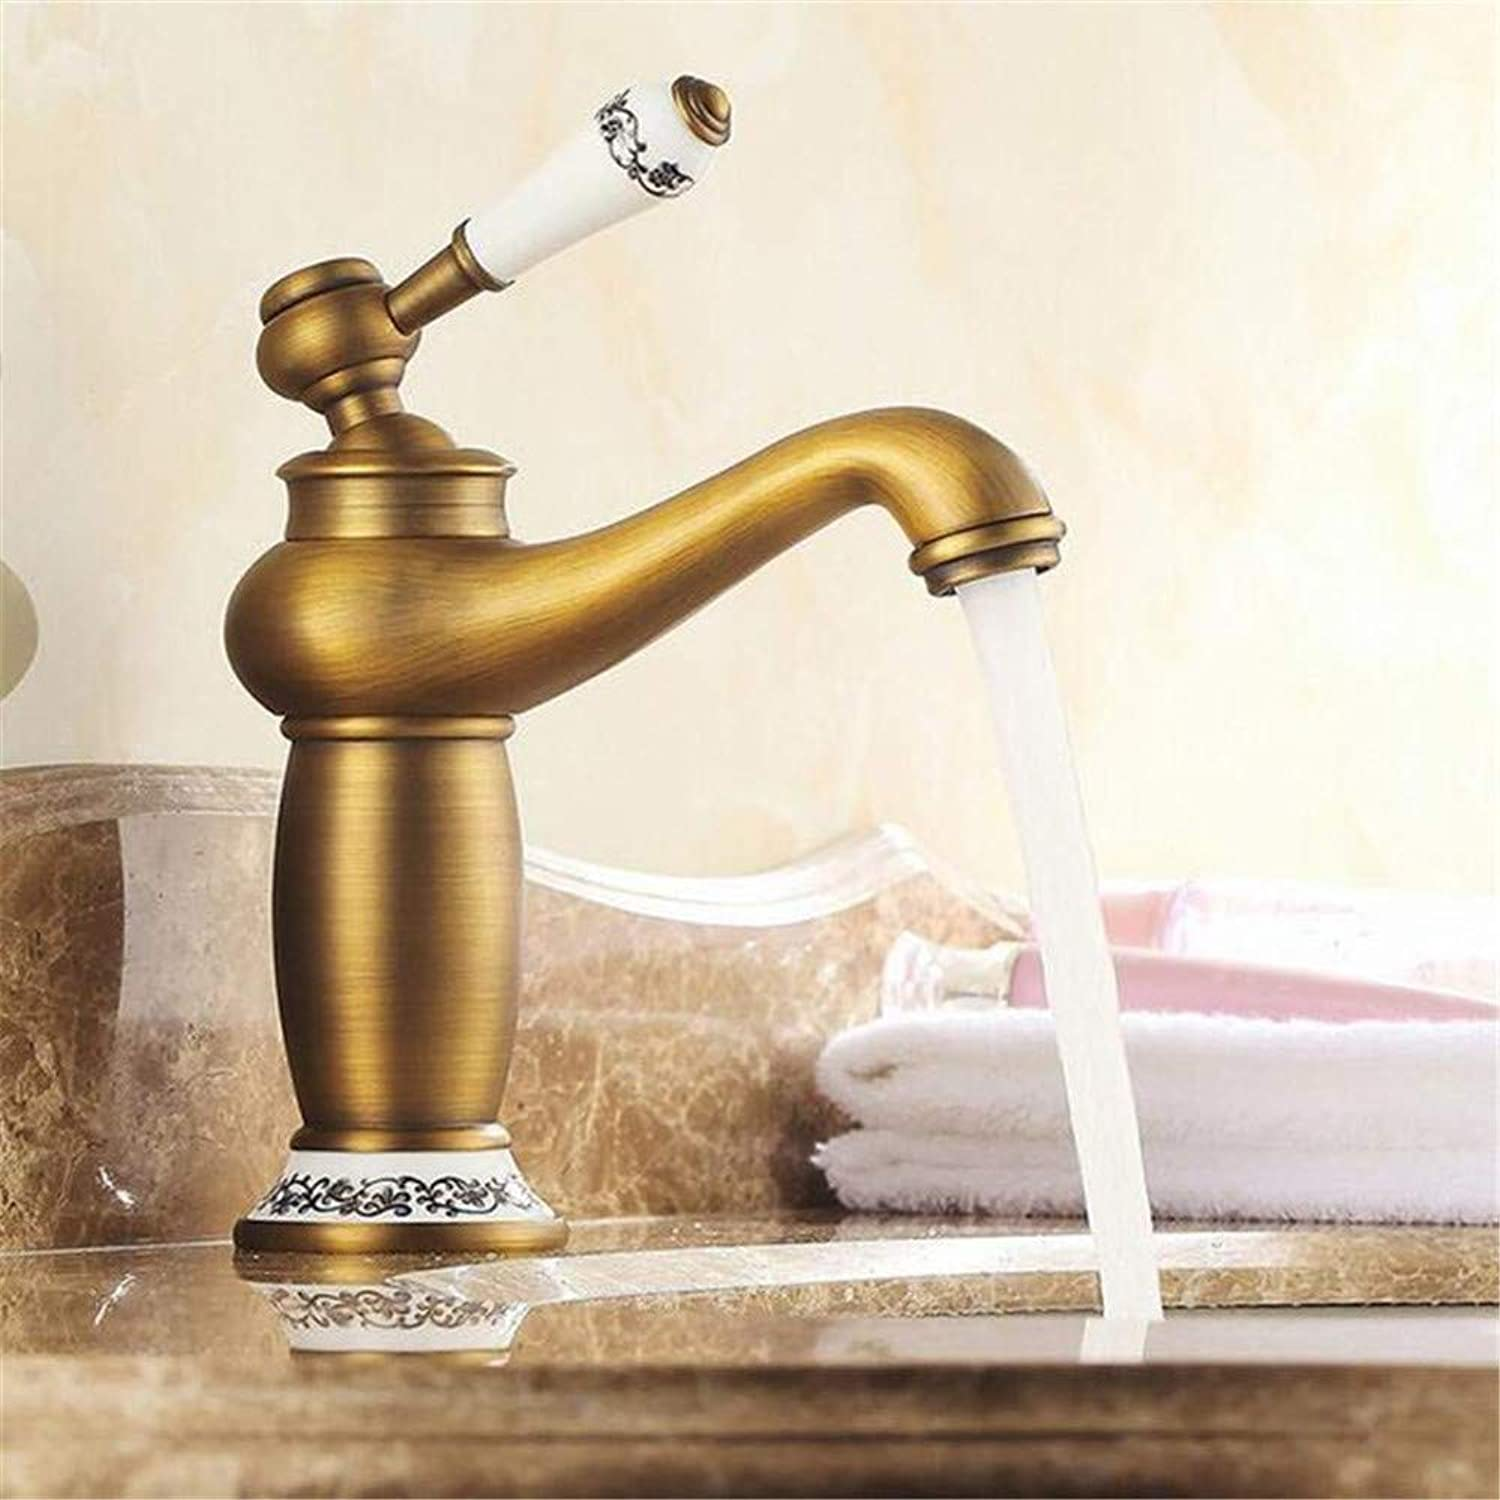 Faucetbasin Faucet Bathroom Sink Tap Retro Style Basin Sink Faucet Single Handle Vessel Sink Mixer Taps Antique Brass Ceramic Lever with Hot and Cold Water